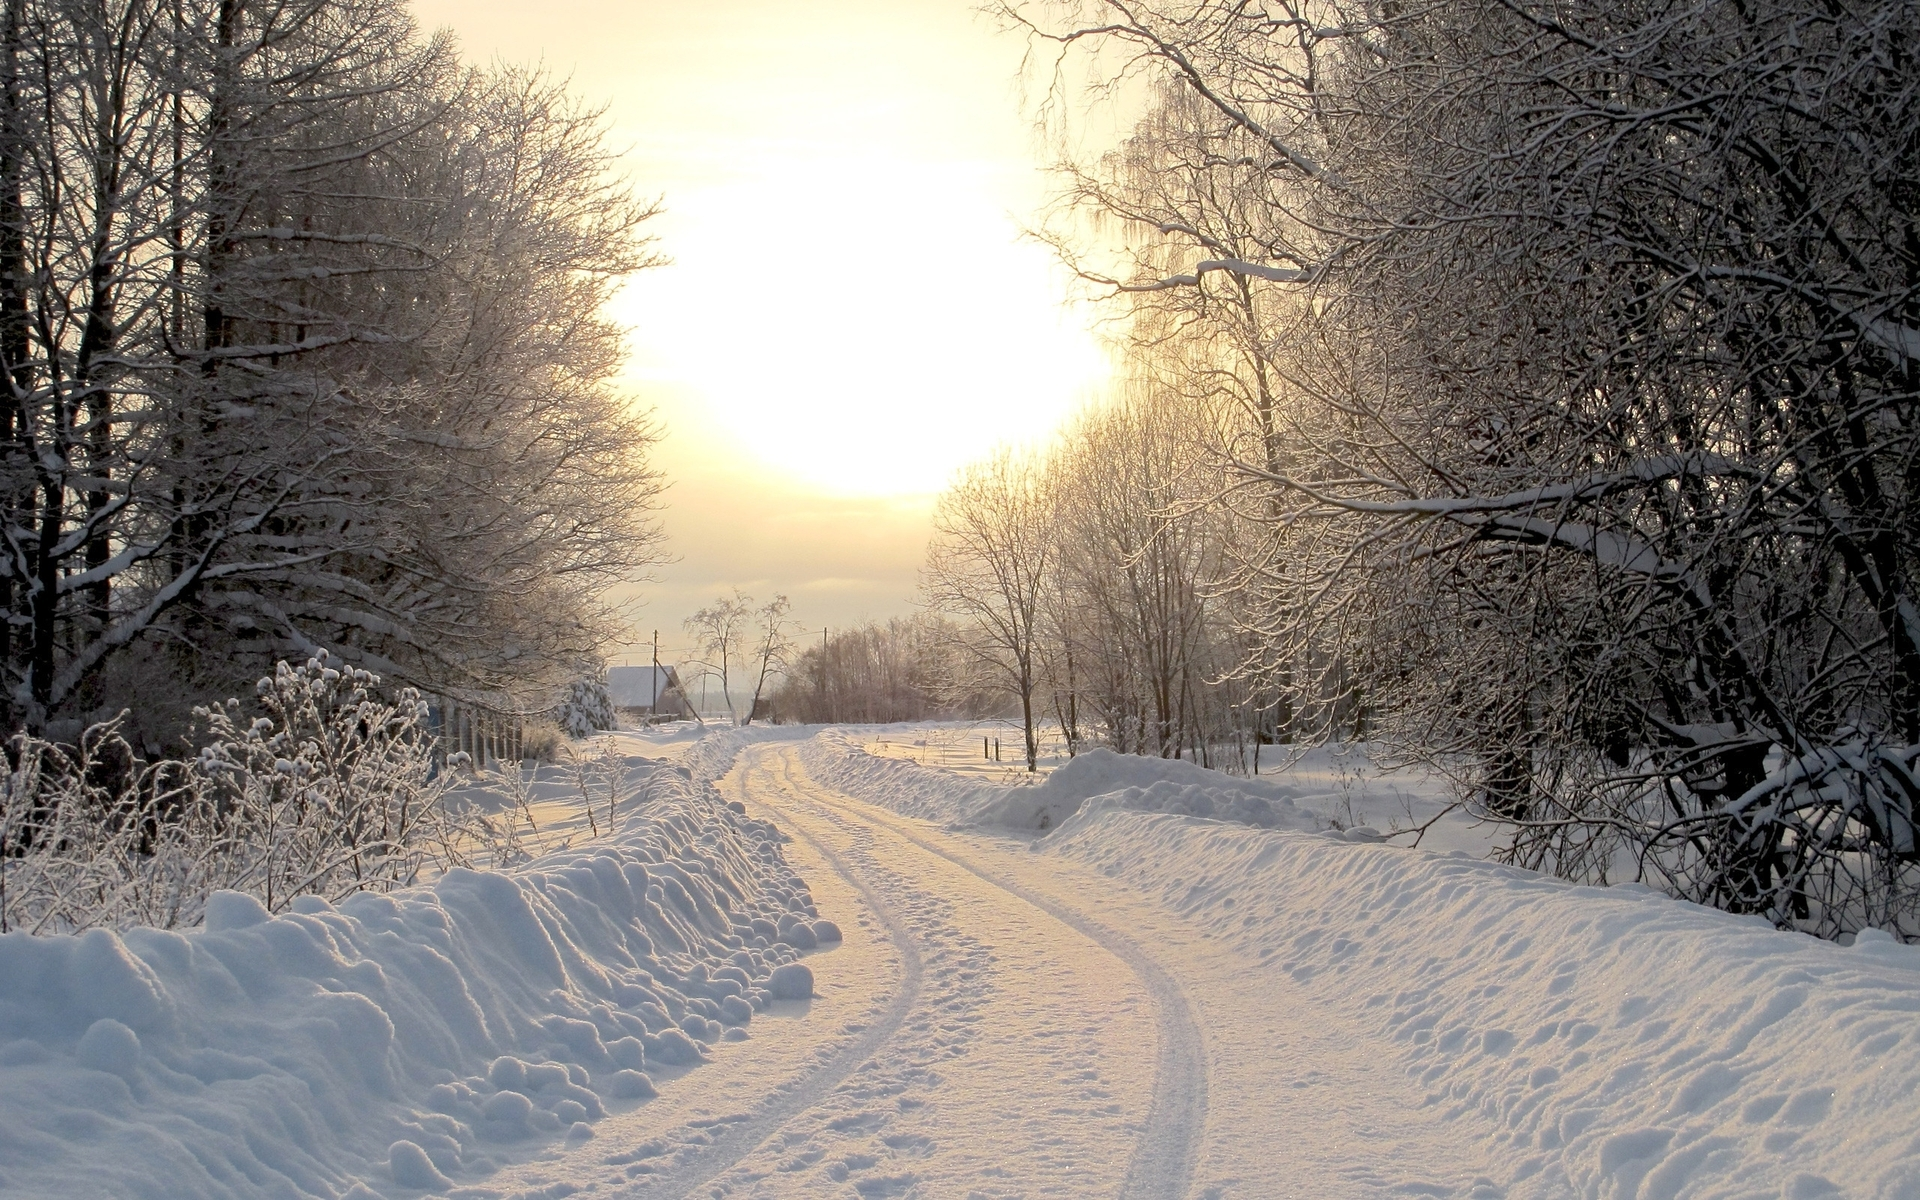 Forest Animated Wallpaper Snowy Road Trees Village Sunny Wallpapers Snowy Road